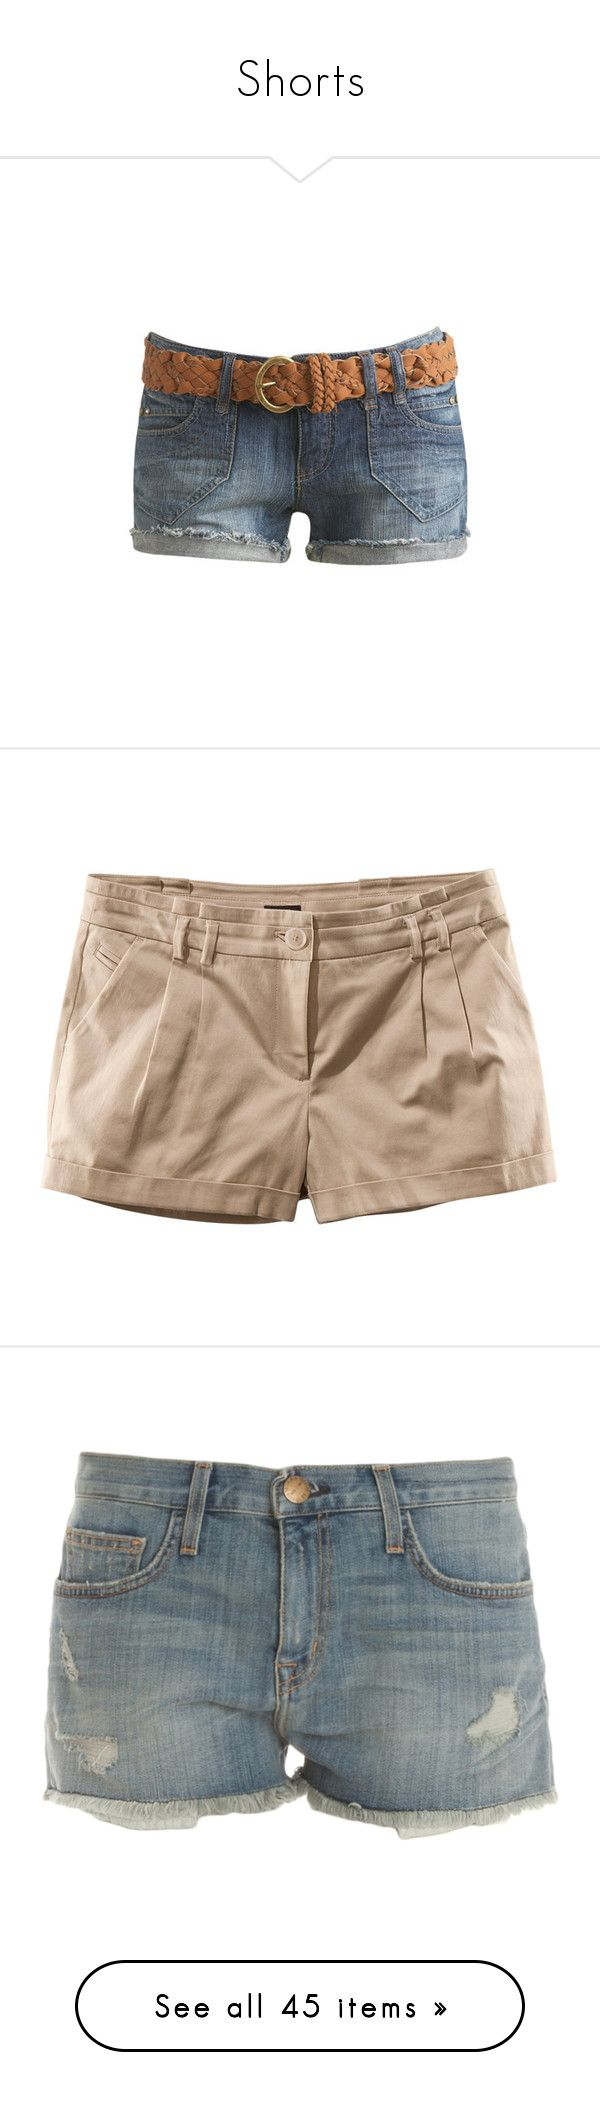 """""""Shorts"""" by chell-p ❤ liked on Polyvore featuring shorts, bottoms, pants, wet seal shorts, wet seal, short, women, short cotton shorts, short shorts and cotton shorts"""